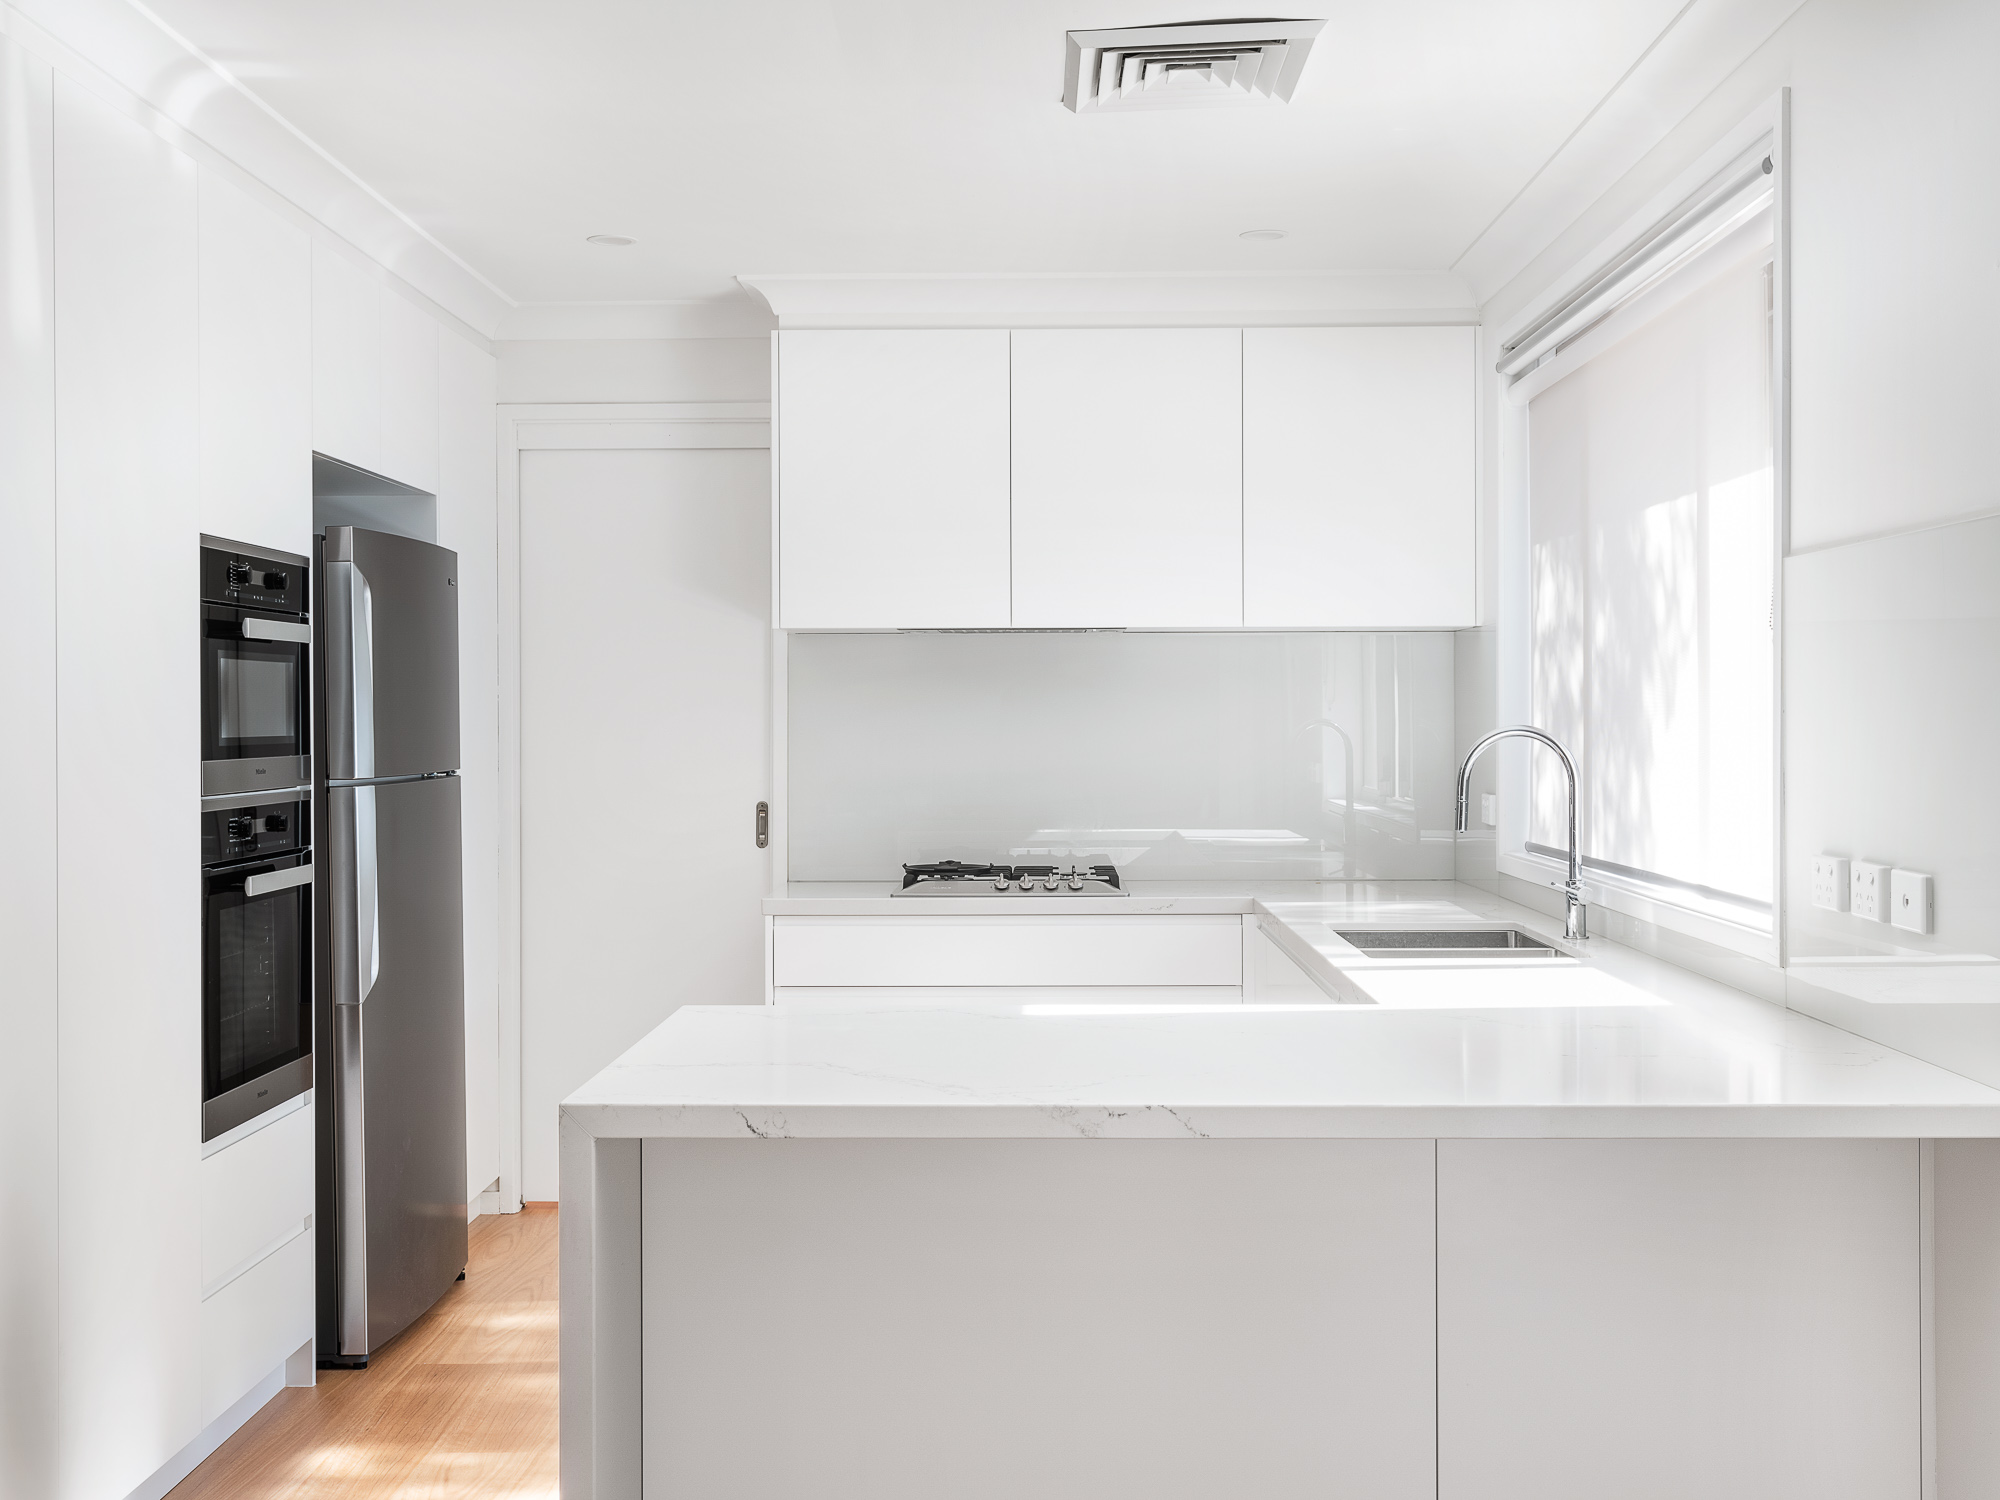 Chatswood kitchen design